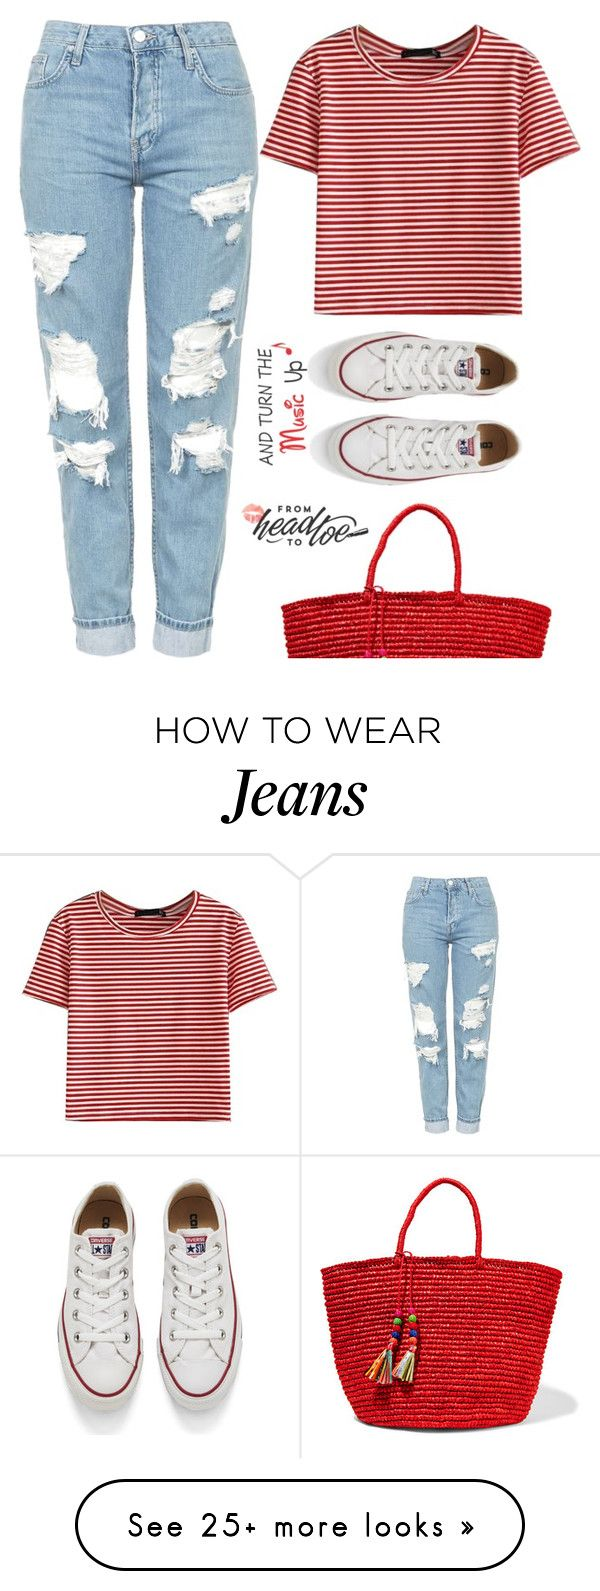 """Turn the music up"" by jan31 on Polyvore featuring Topshop, WithChic, Converse and Sensi Studio"